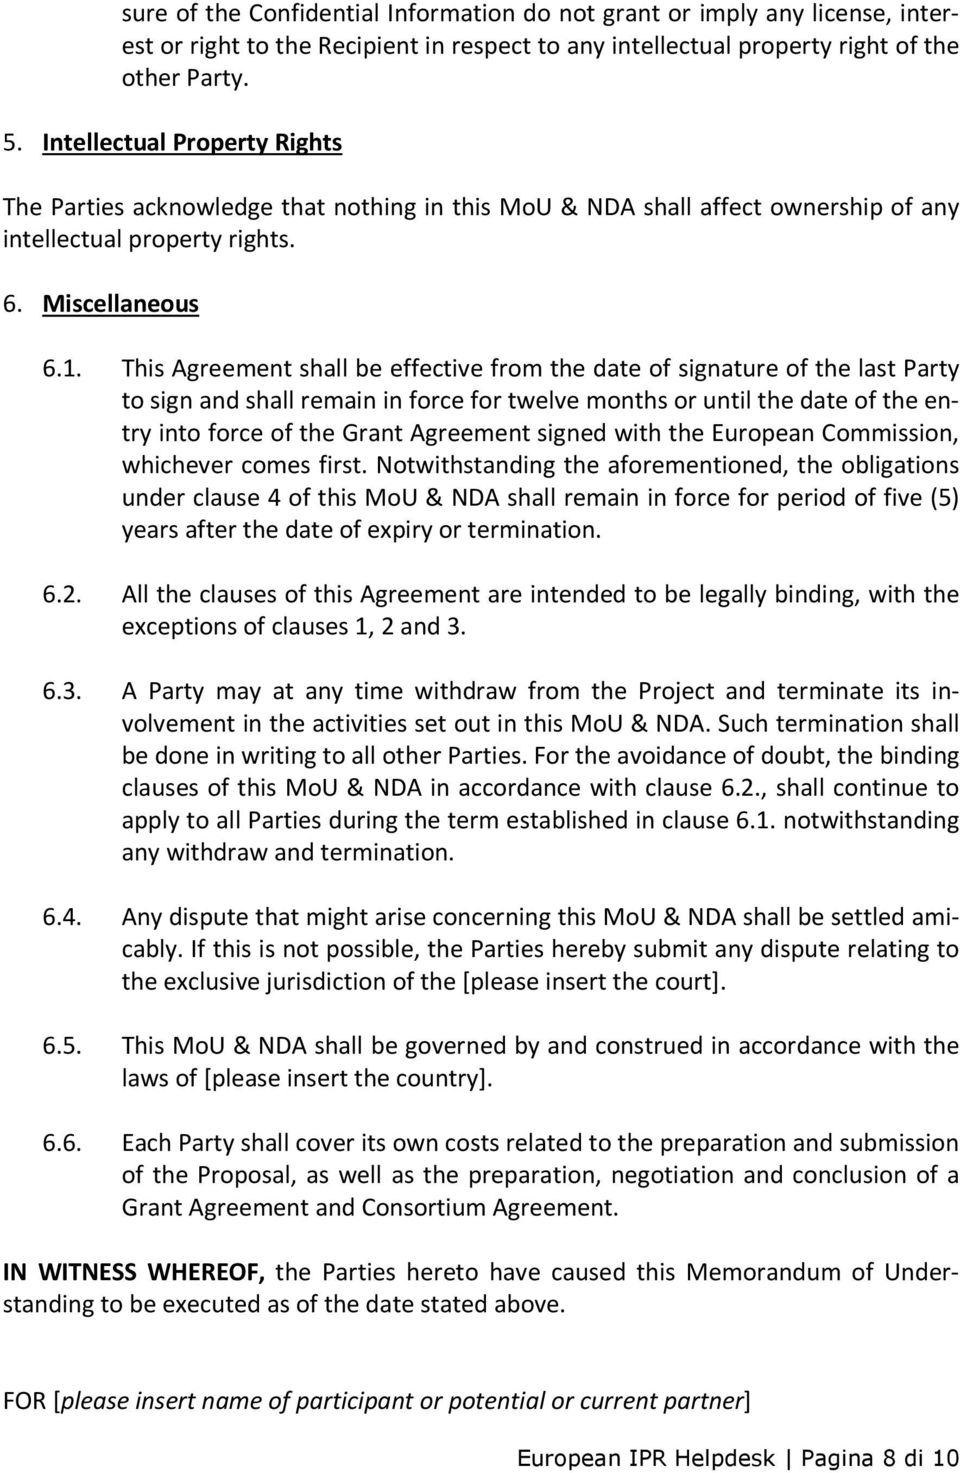 This Agreement shall be effective from the date of signature of the last Party to sign and shall remain in force for twelve months or until the date of the entry into force of the Grant Agreement